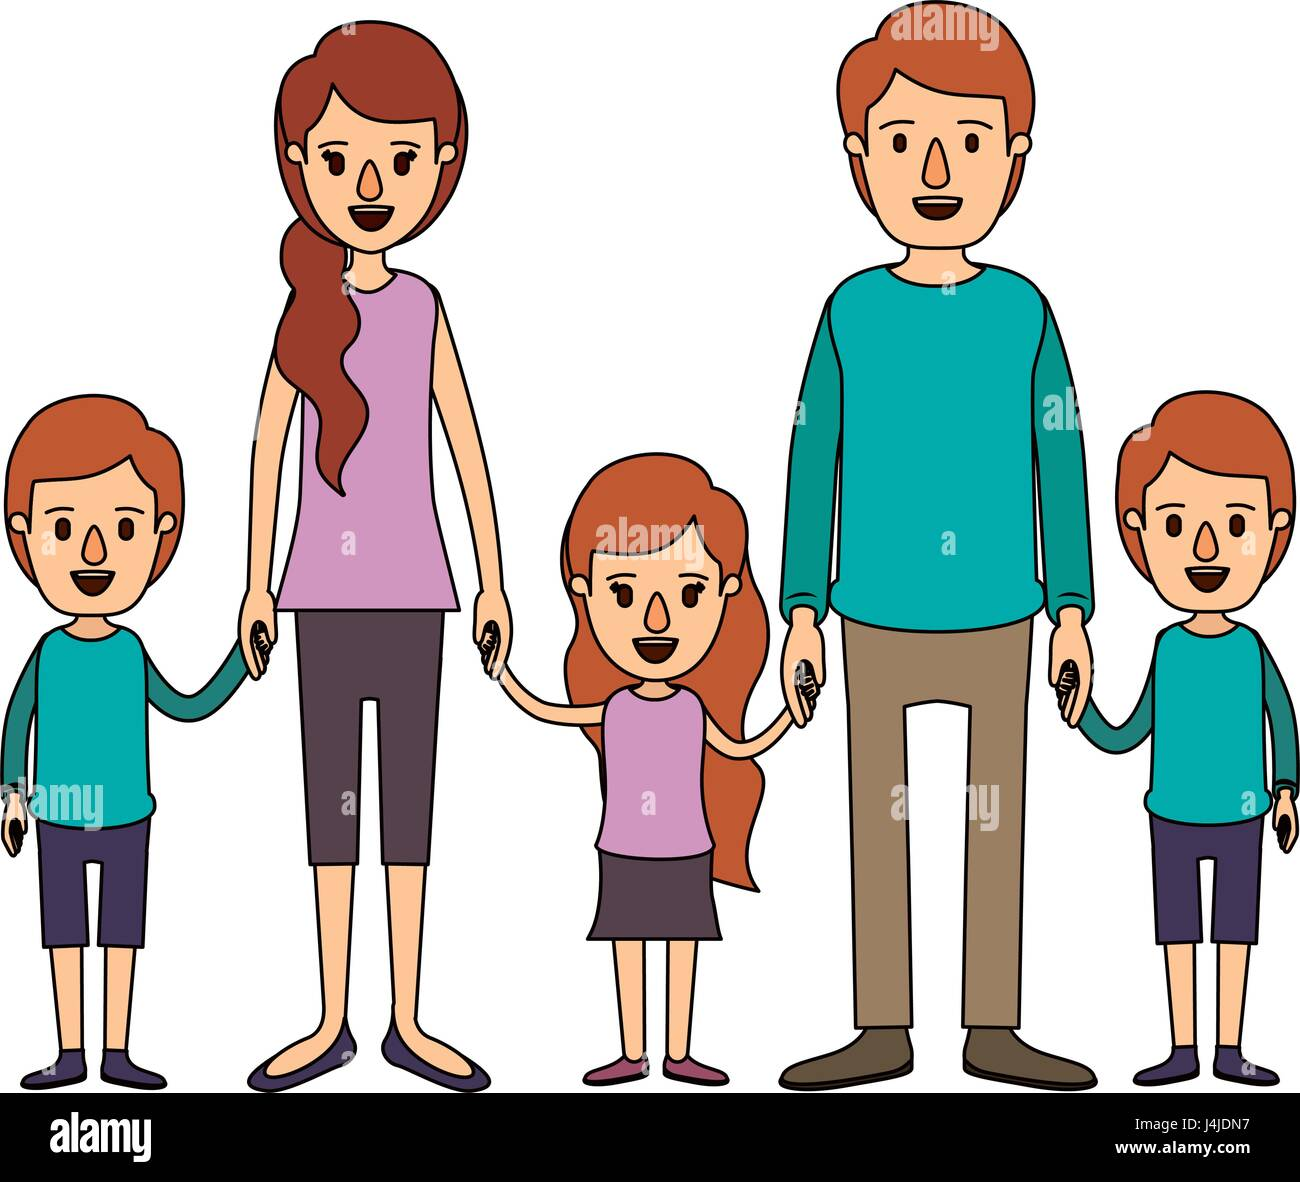 color image caricature family with young parents and little kids taken hands - Stock Vector